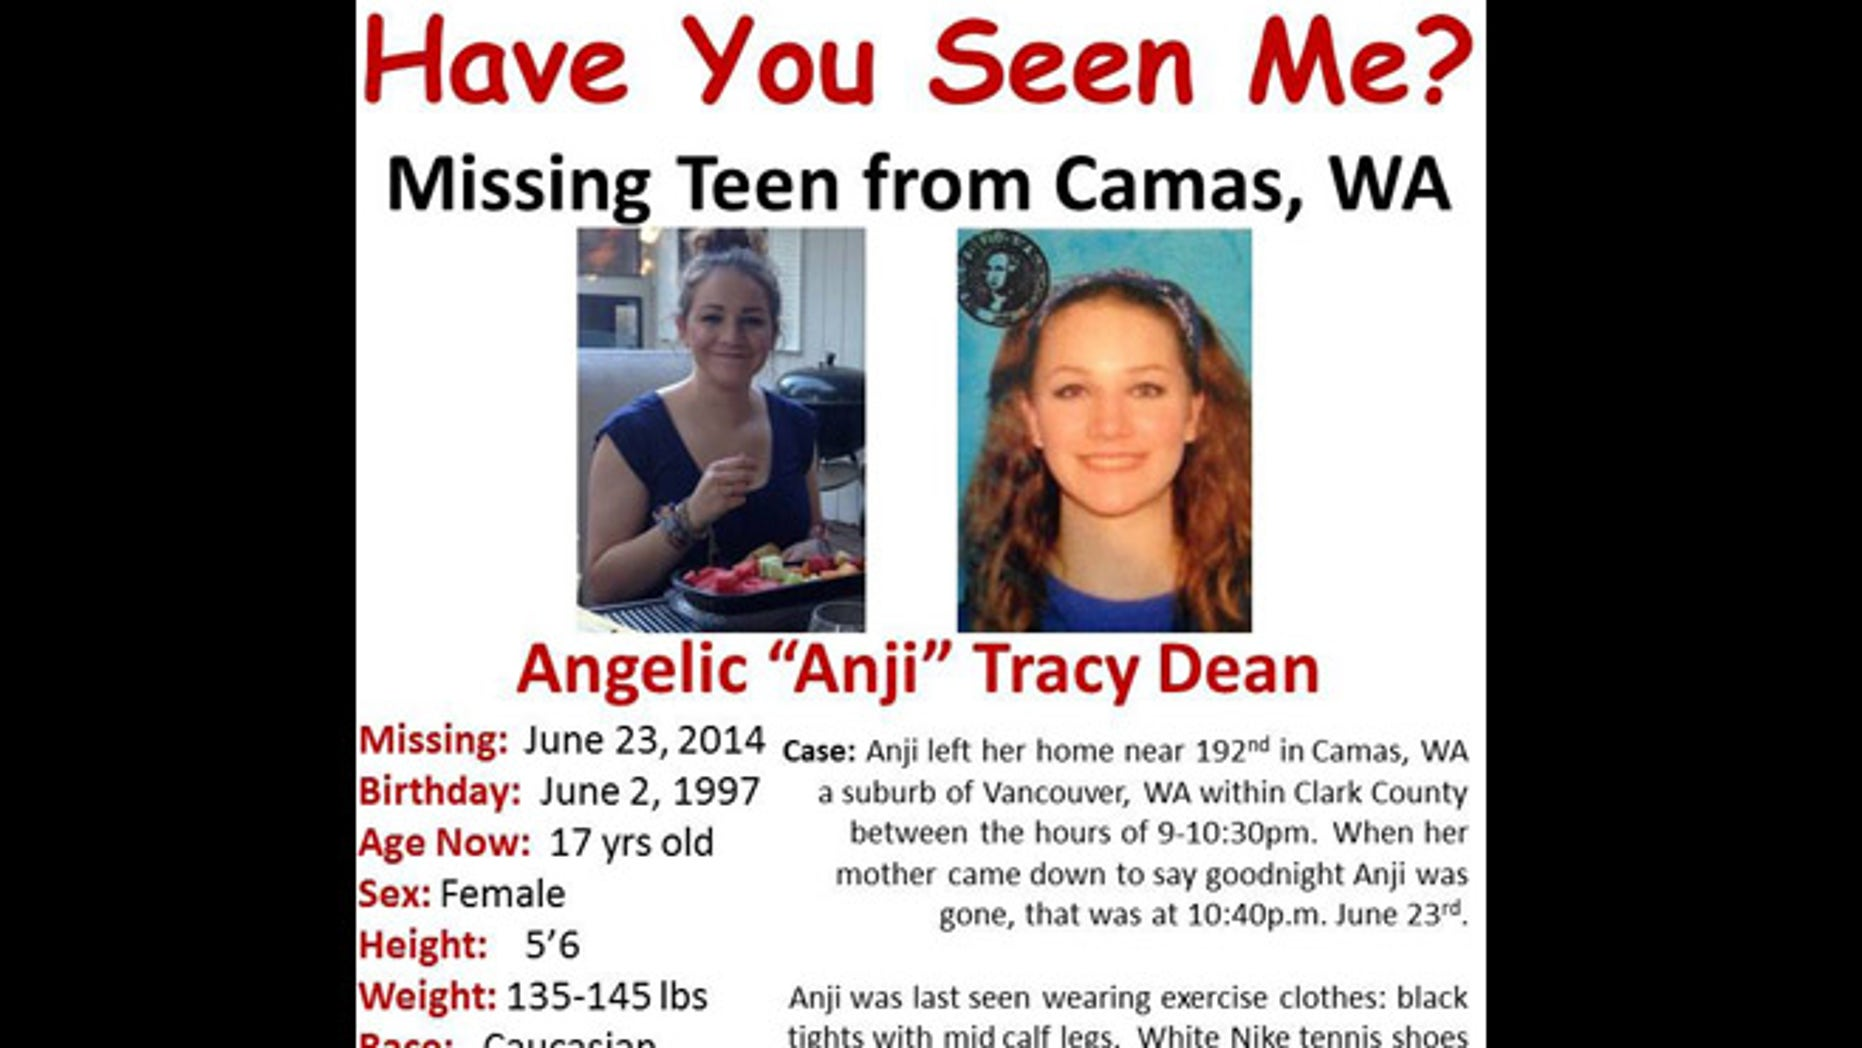 A missing persons poster for Anji Dean.